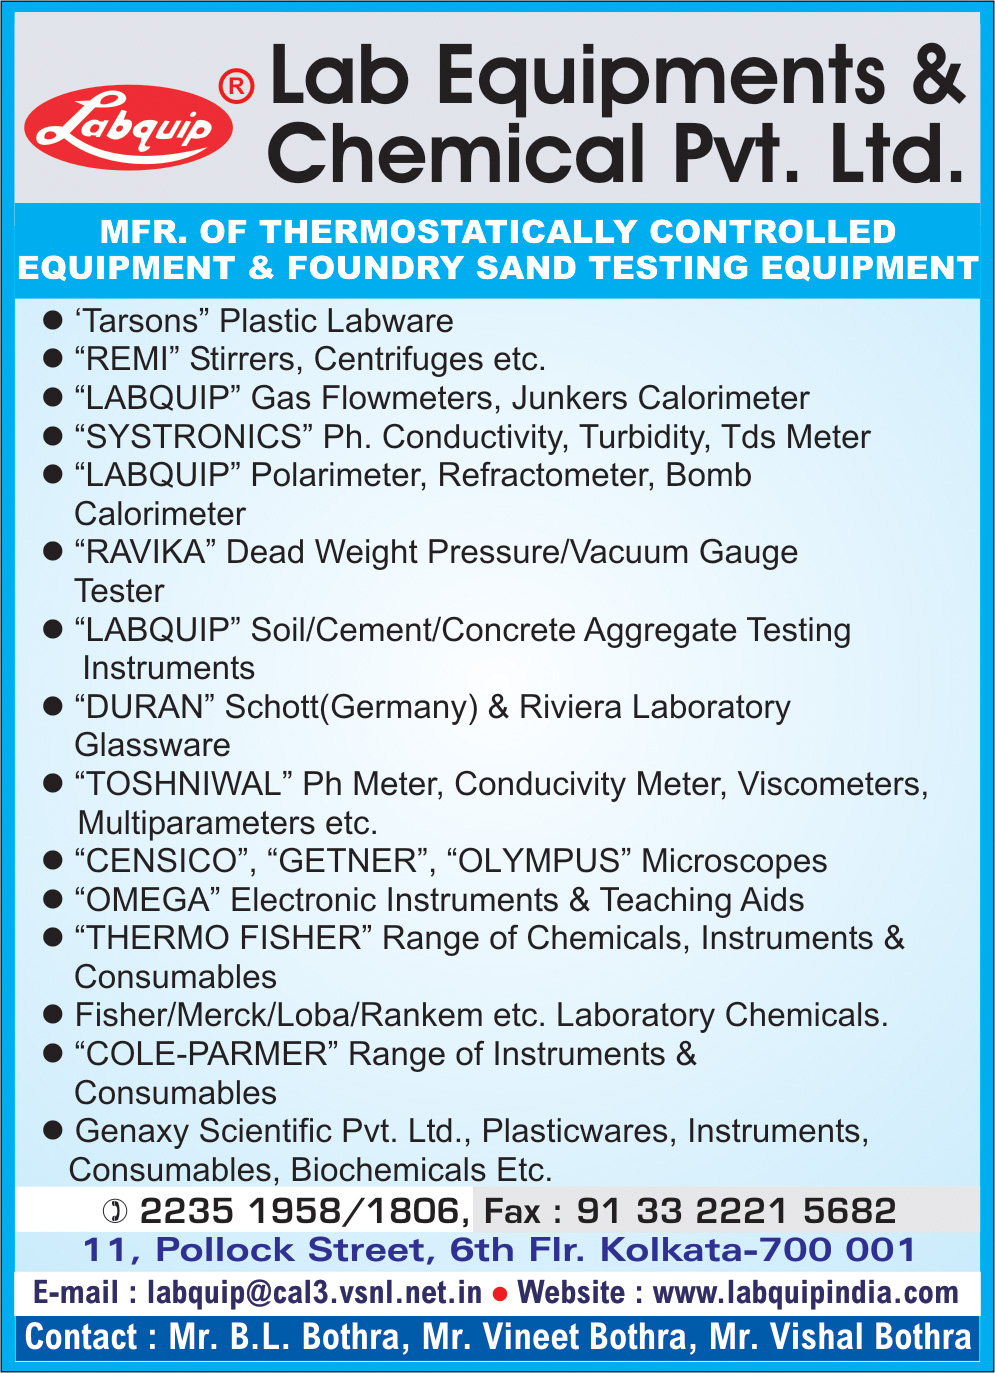 Scientific Apparatus and Chemicals, LAB EQUIPMENTS & CHEMICAL PVT LTD, Kolkata,  Yellow Pages, Kolkata, West Bengal